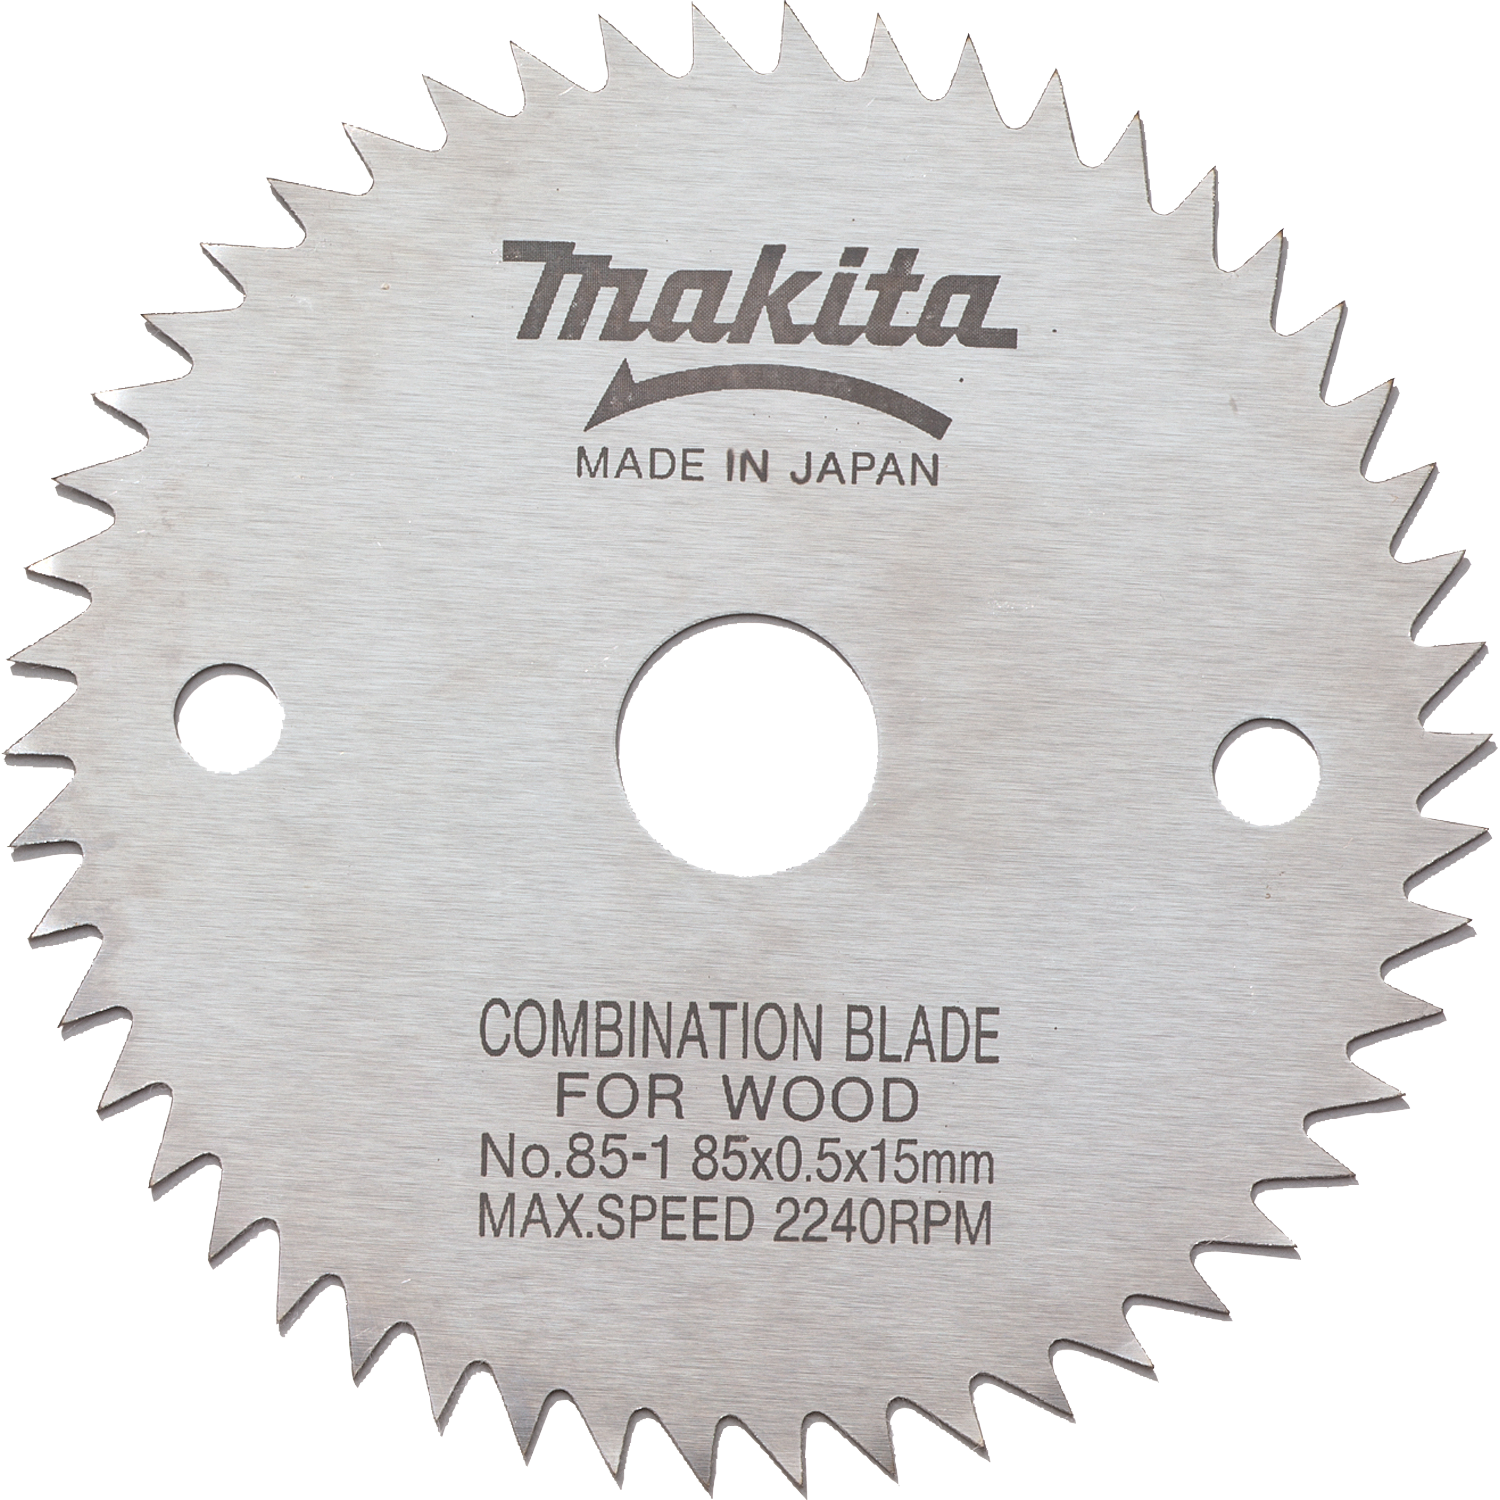 Makita usa product details 721003 8 circular saw blade general purpose 721003 8 greentooth Image collections